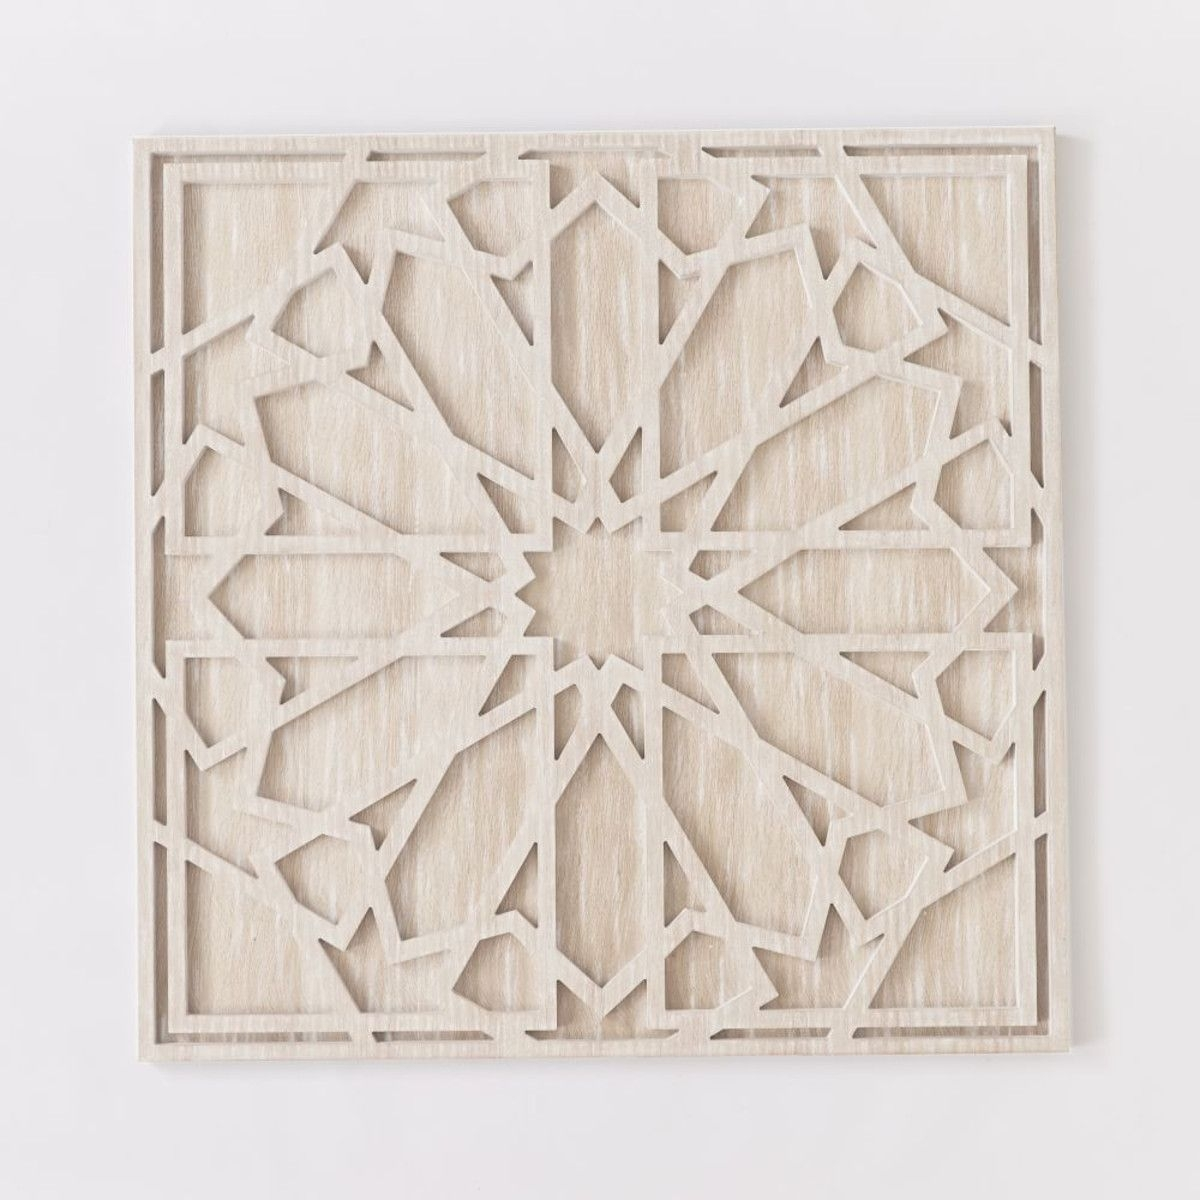 Appealing Art Carved Wood Wall Whitewashed West Elm Uk For Trend And For Most Up To Date West Elm Wall Art (View 5 of 20)